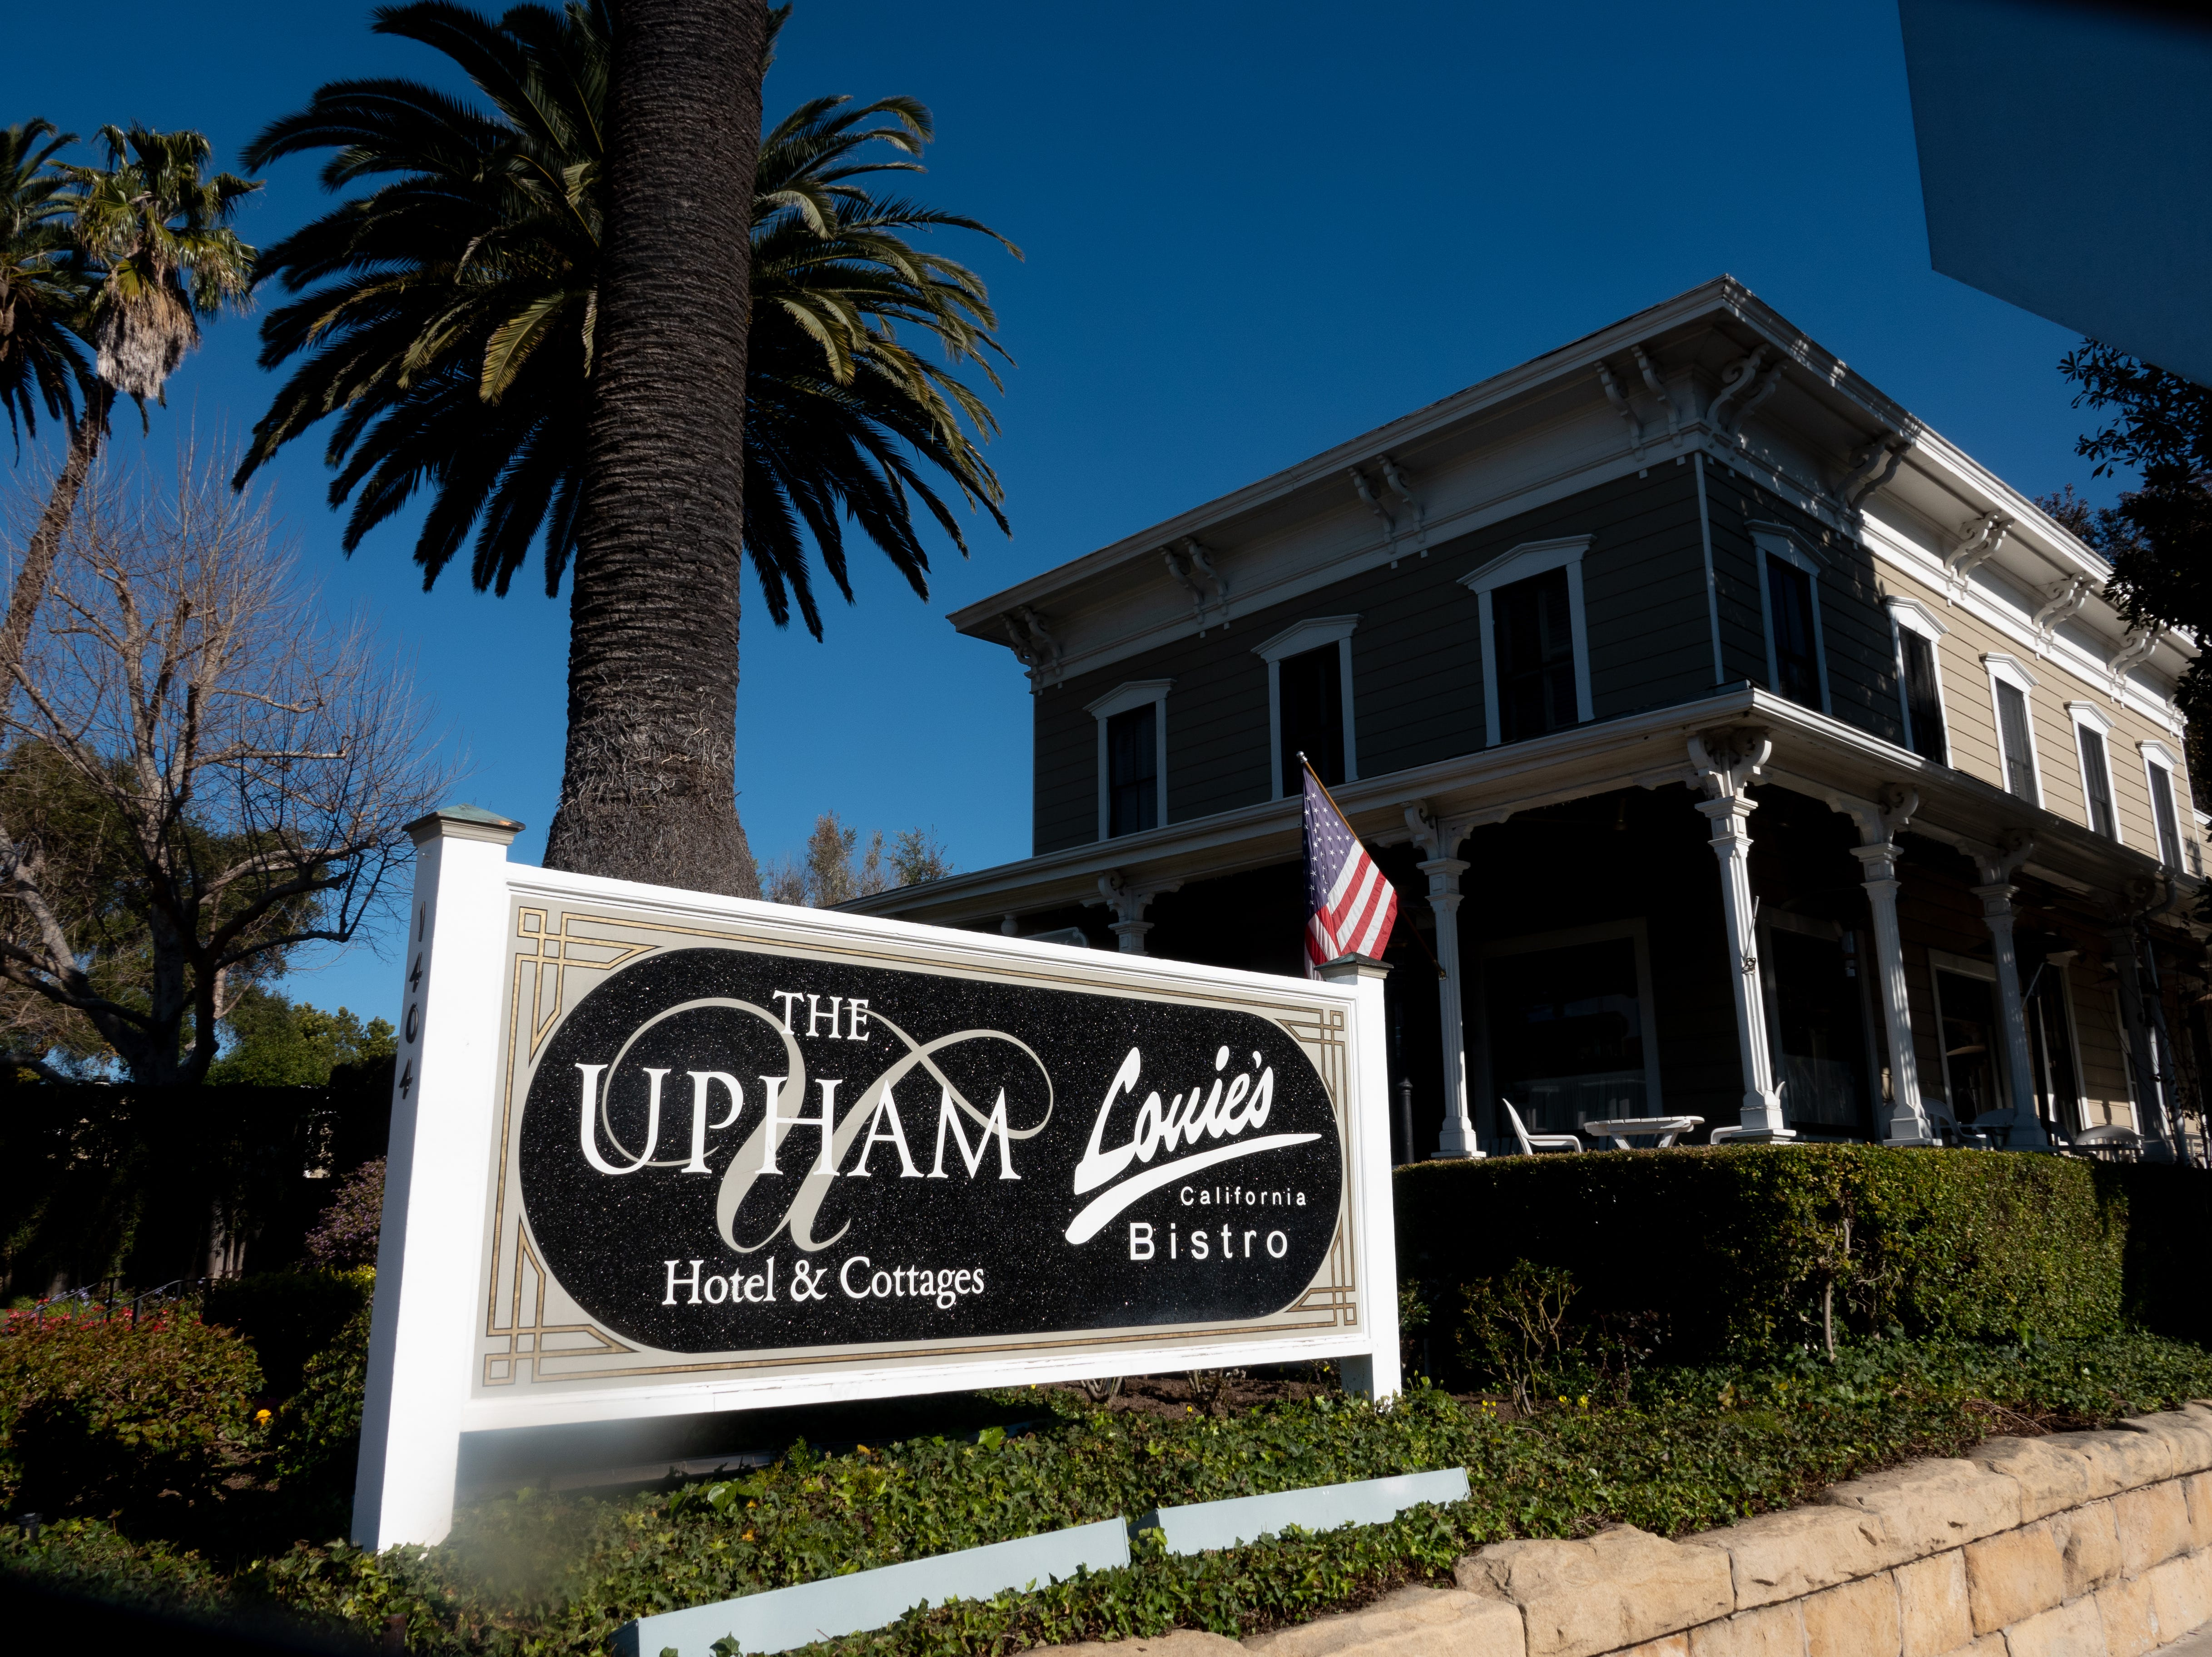 The Upham Hotel has been in operation since 1871.